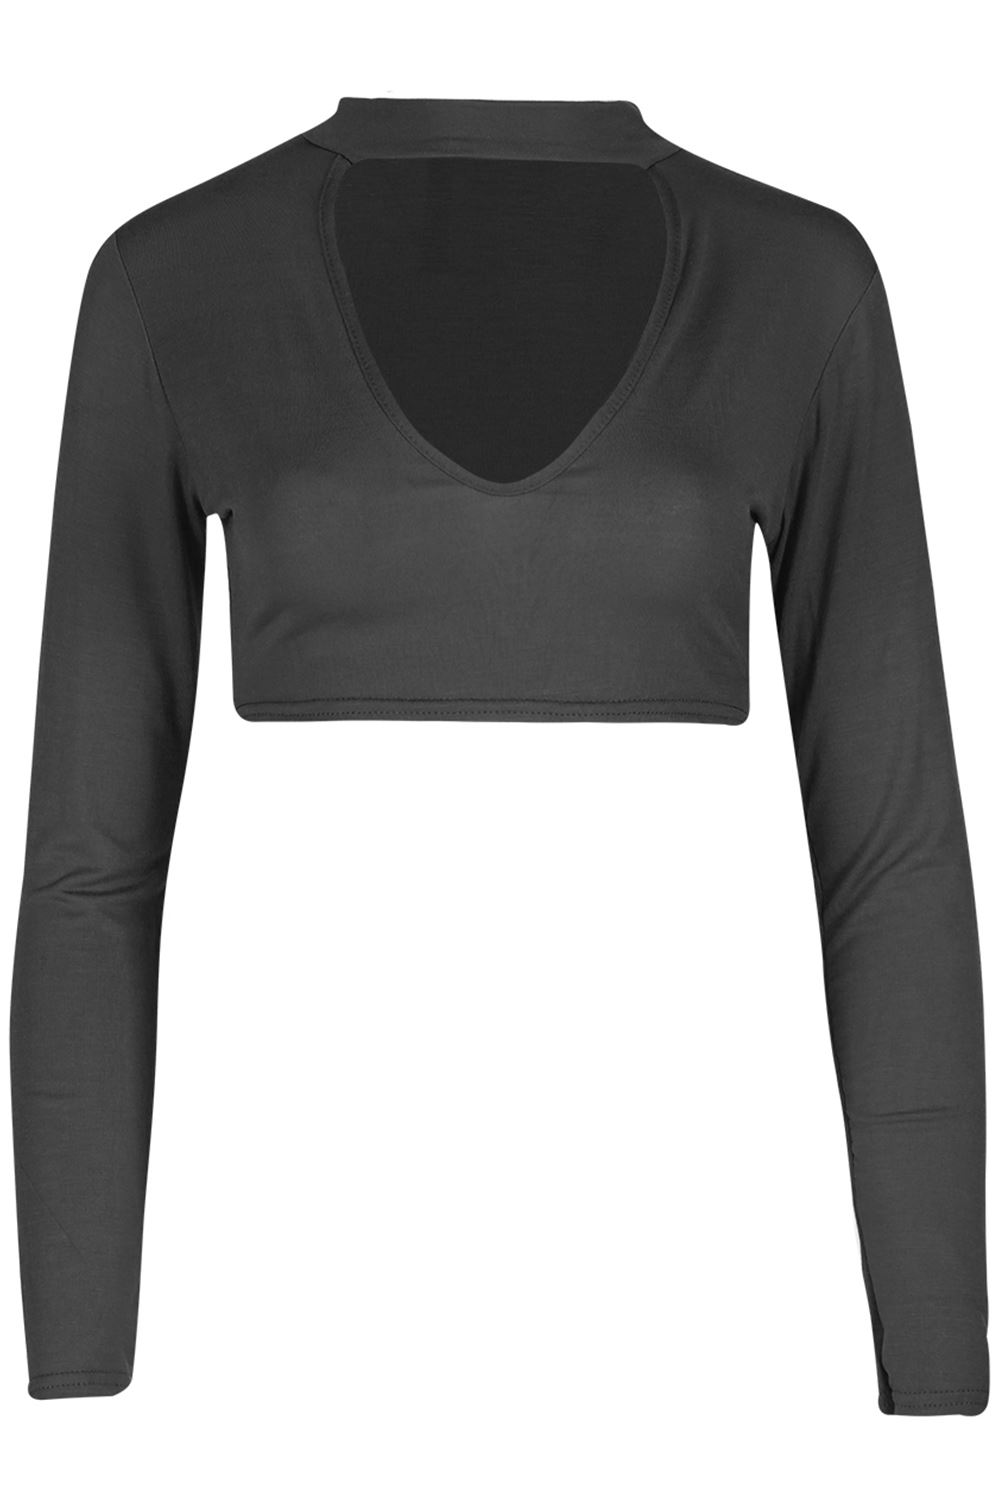 Womens Ladies Chocker V-Plunge Neck Stretch Long Sleeves Belly Bralet Crop Top